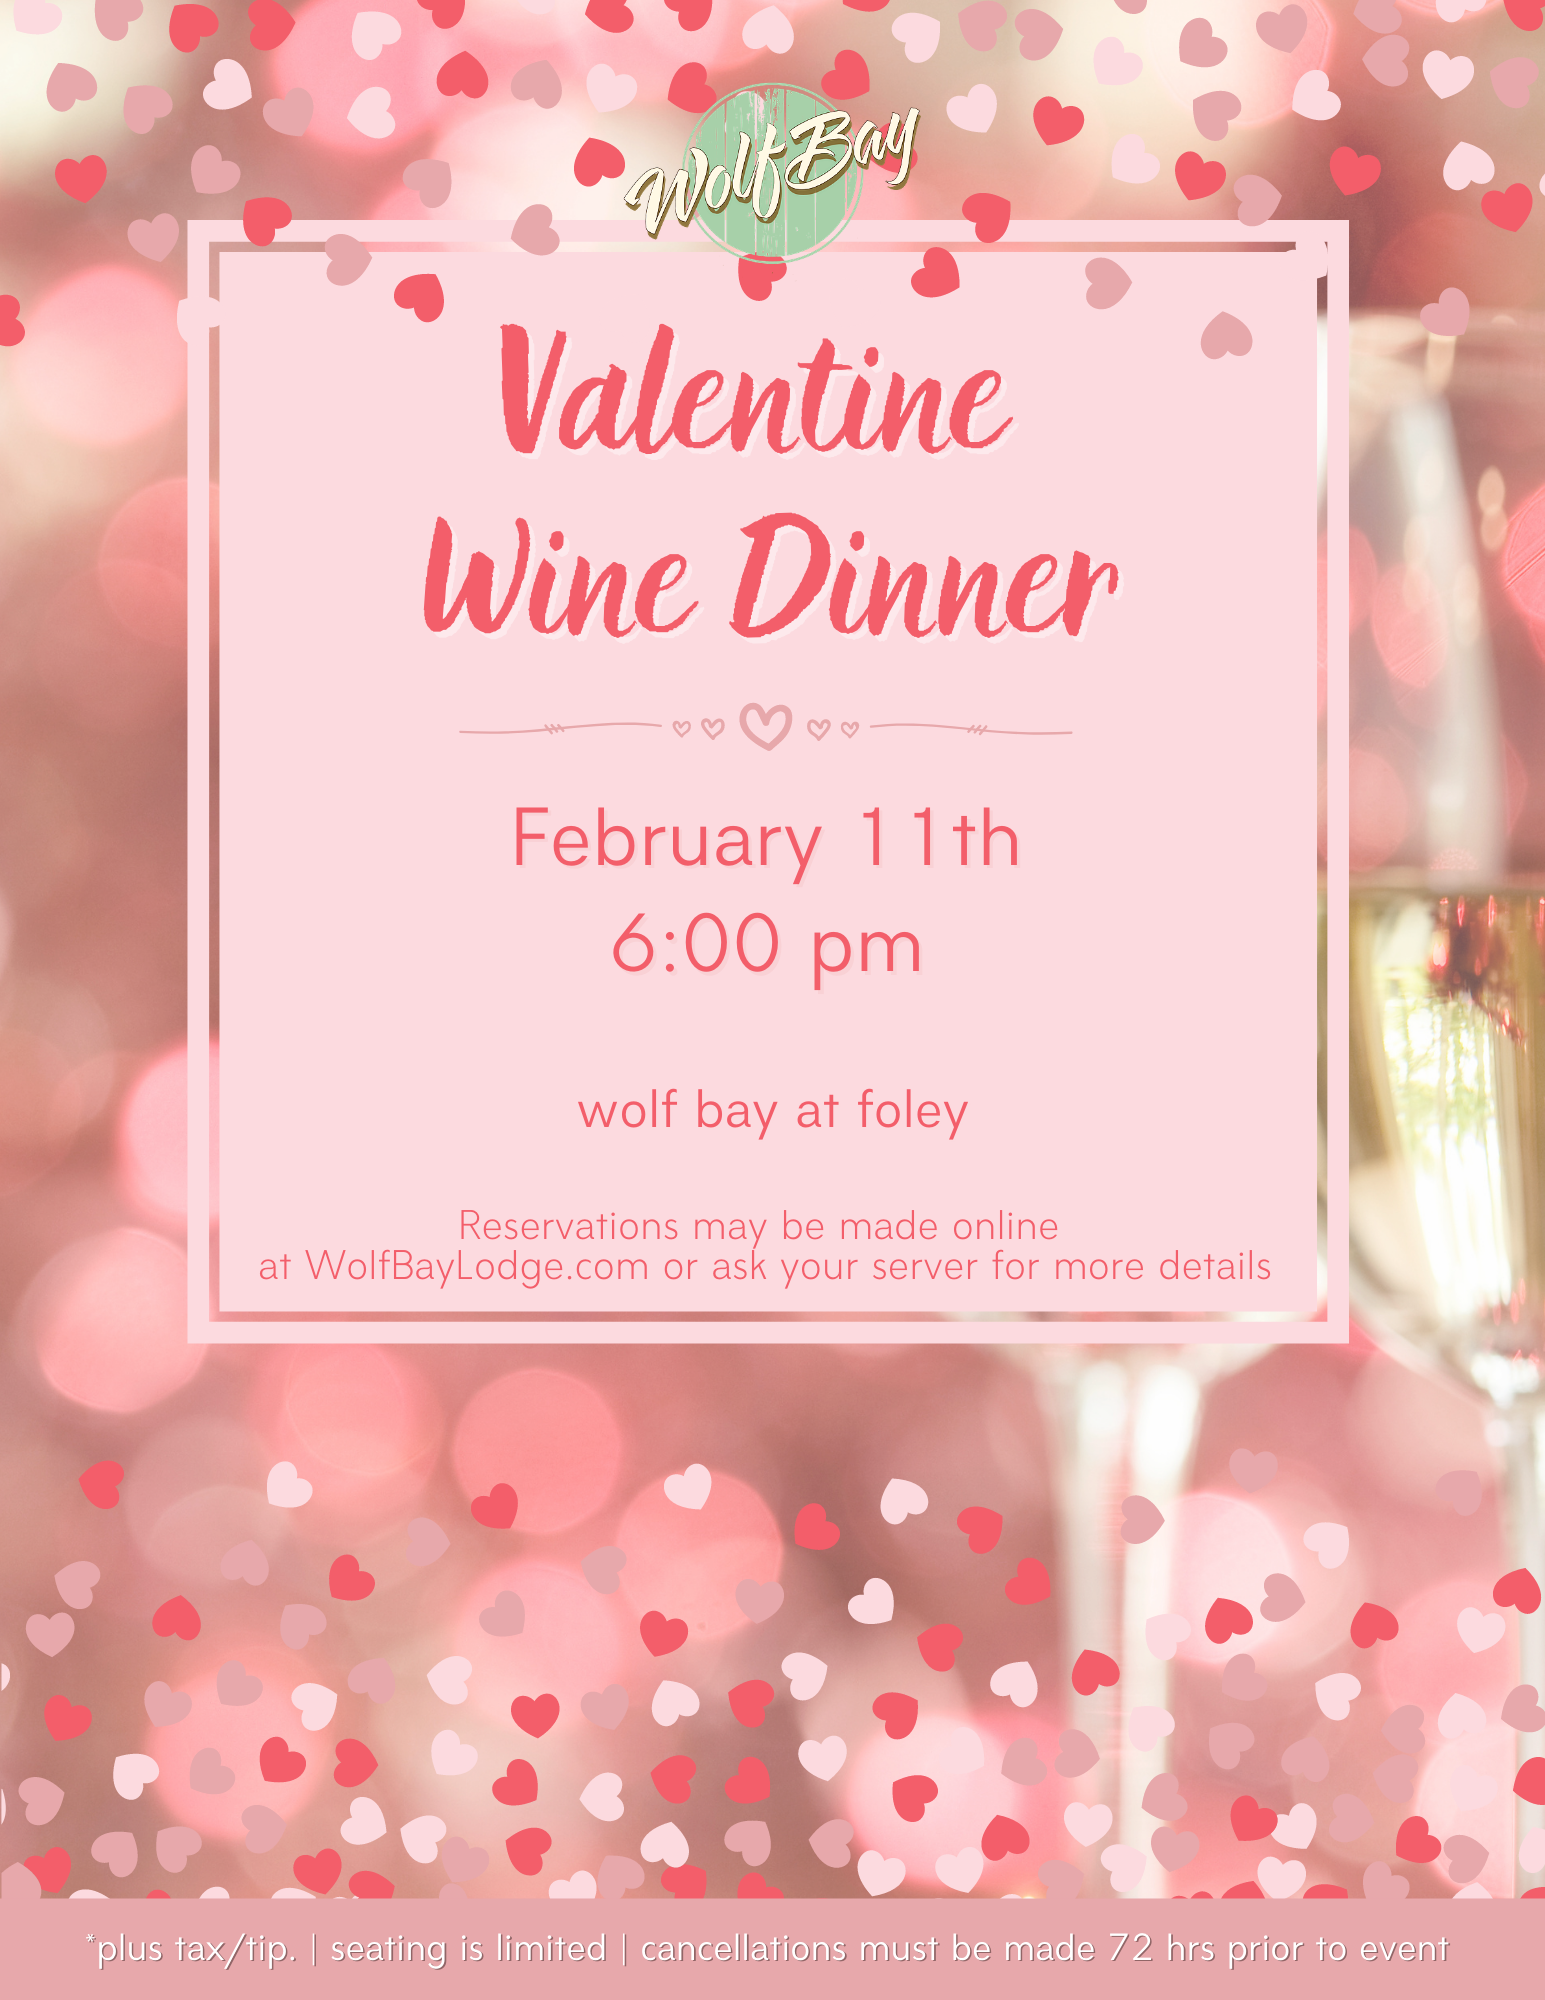 Wolf Bay Valentine Wine Dinner